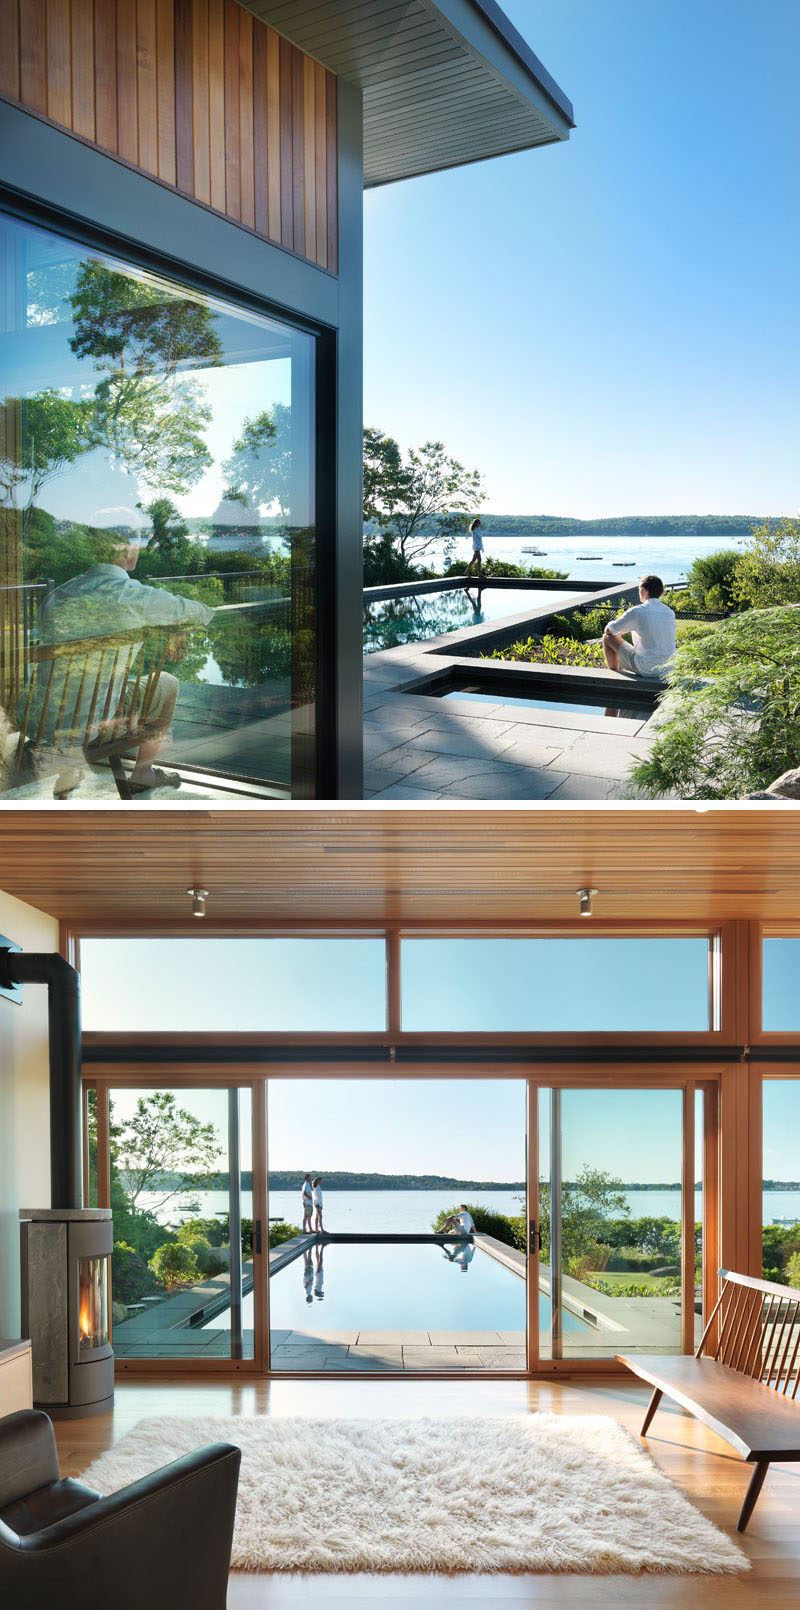 This modern guest house looks out towards pool and the harbor so that the clients, who are avid sailors, can watch the ever-changing view of boats.